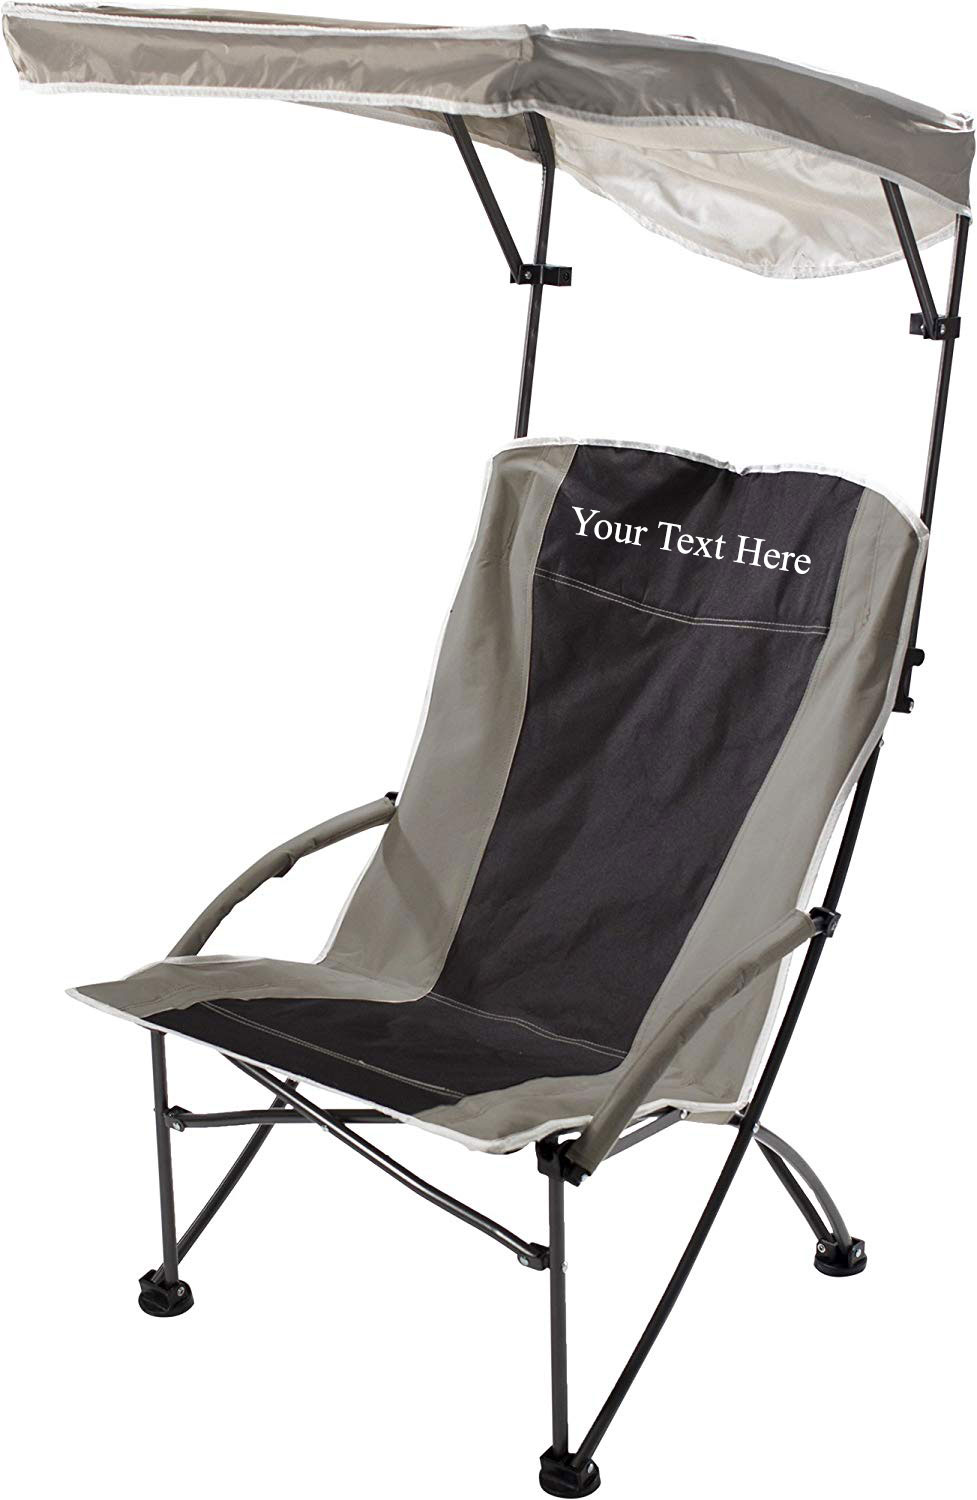 Imprinted Personalized Pro Comfort High Shade Chair by Quik Shade